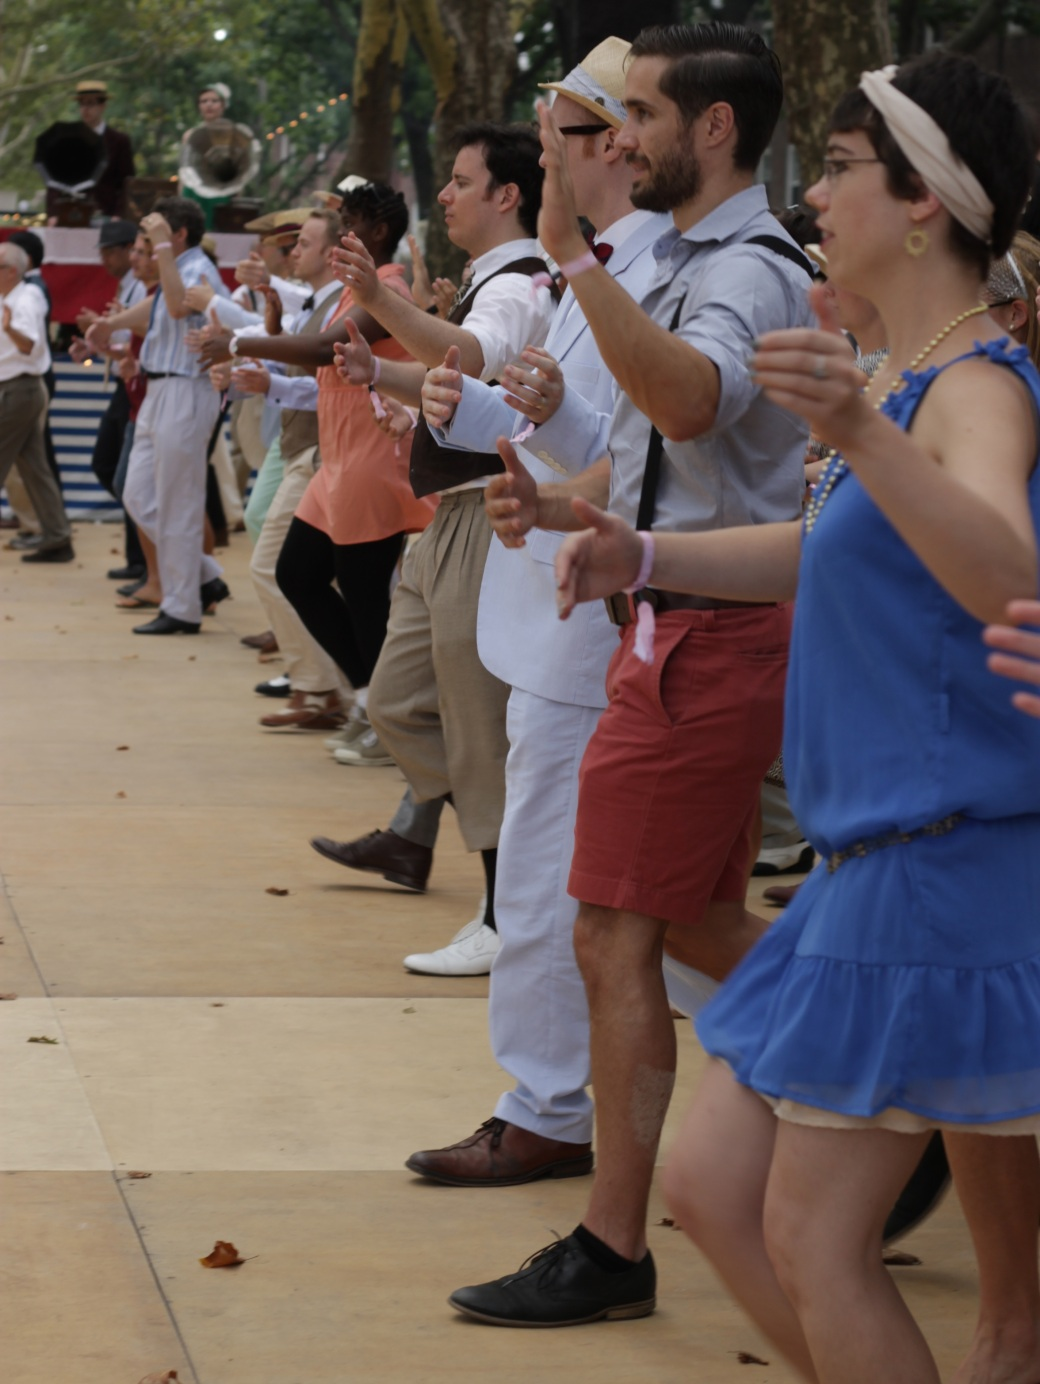 new york city governors island jazz age lawn party august 17 2014 12